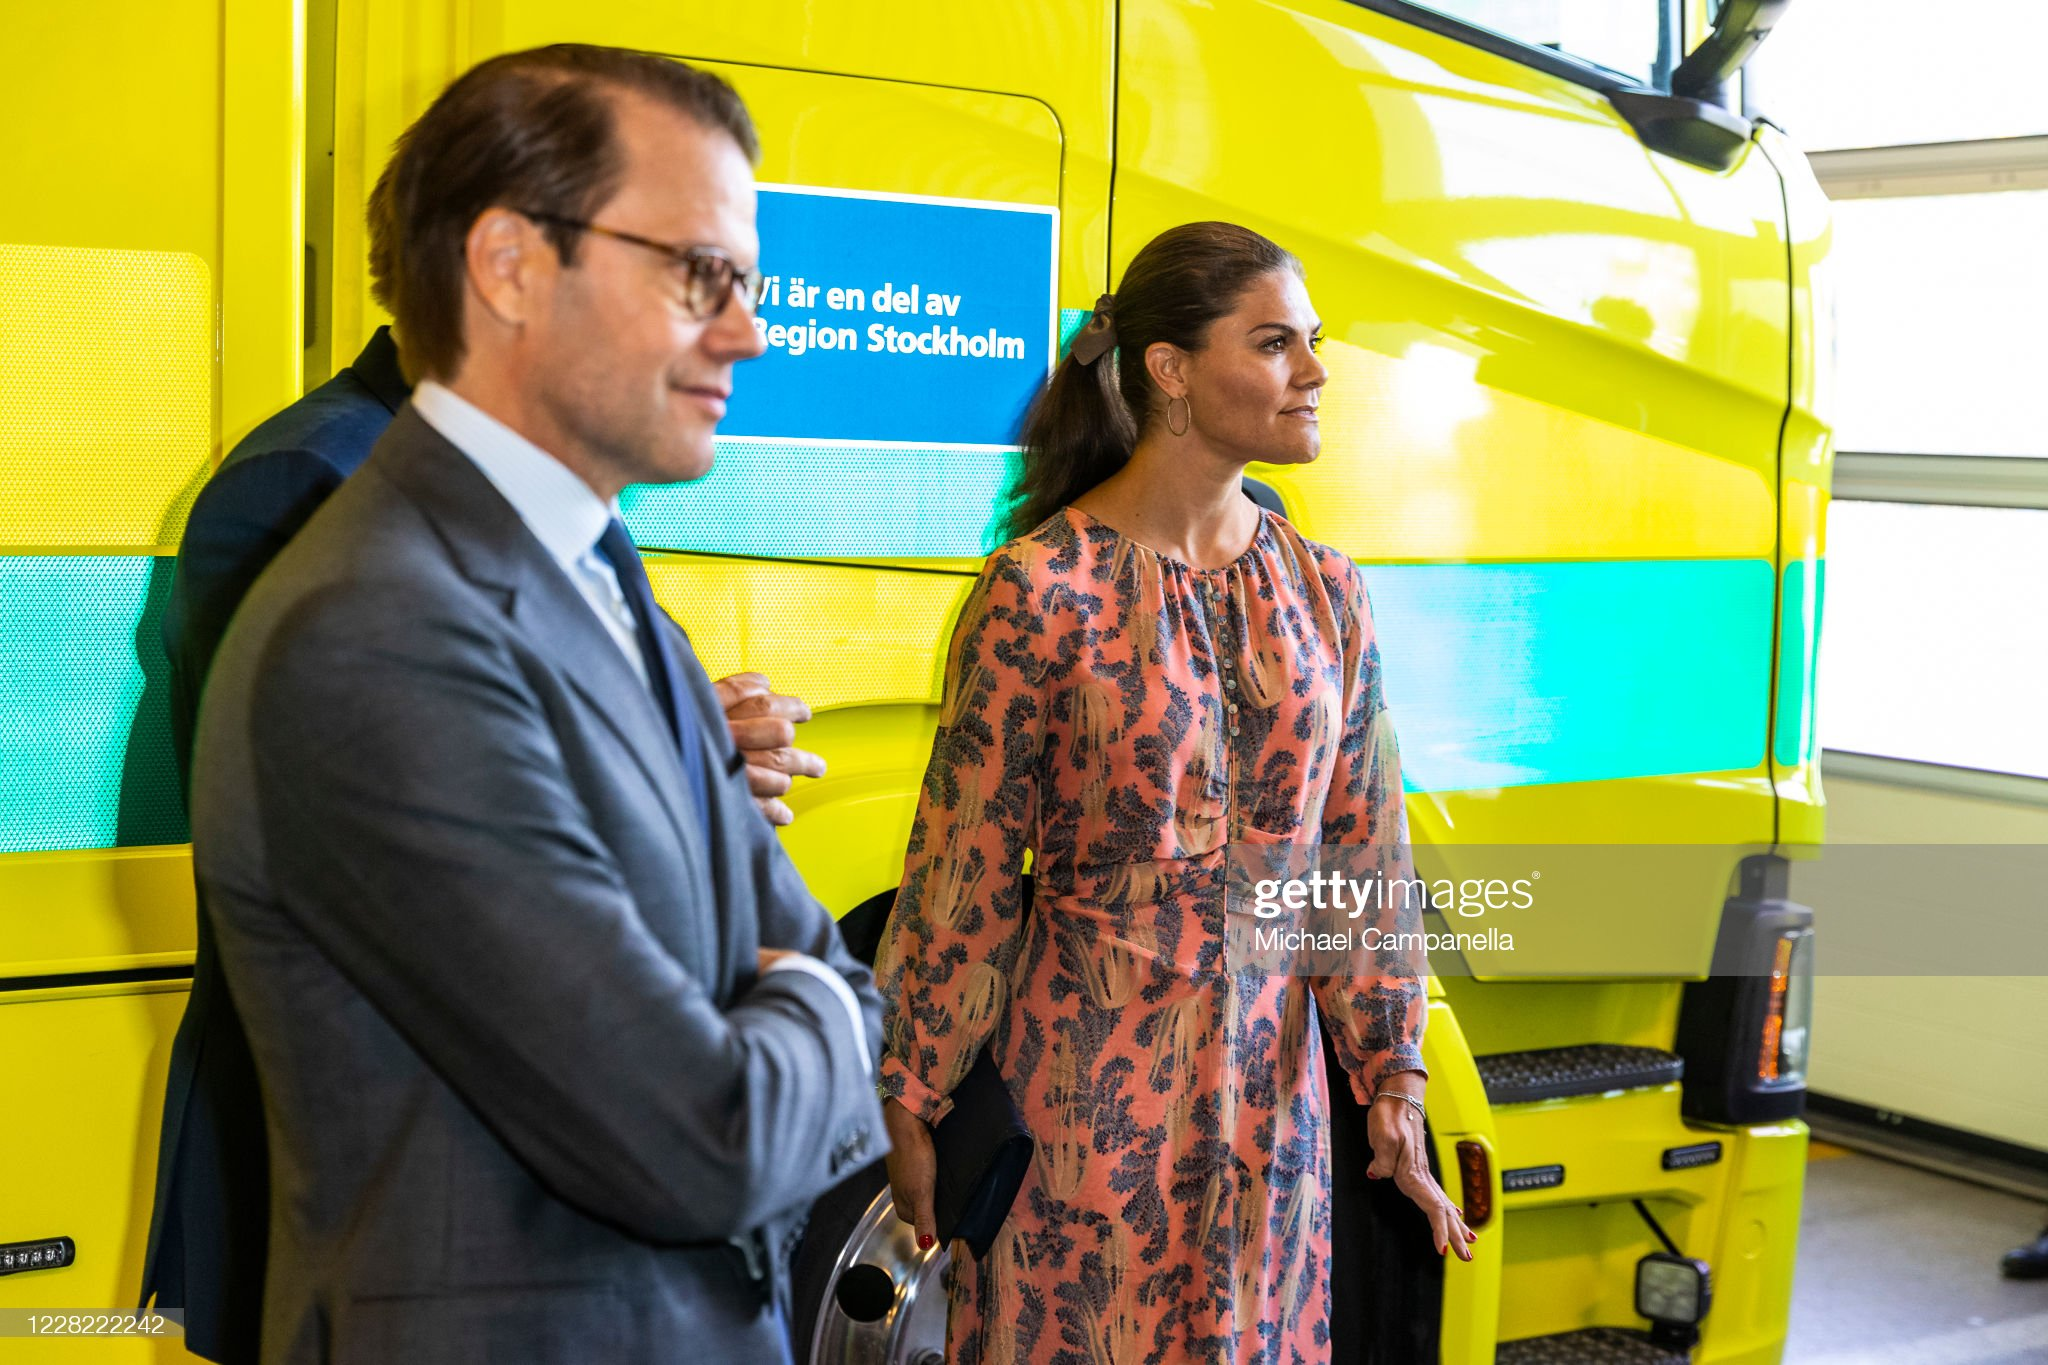 crown-princess-victoria-and-prince-daniel-of-sweden-visit-an-station-picture-id1228222242